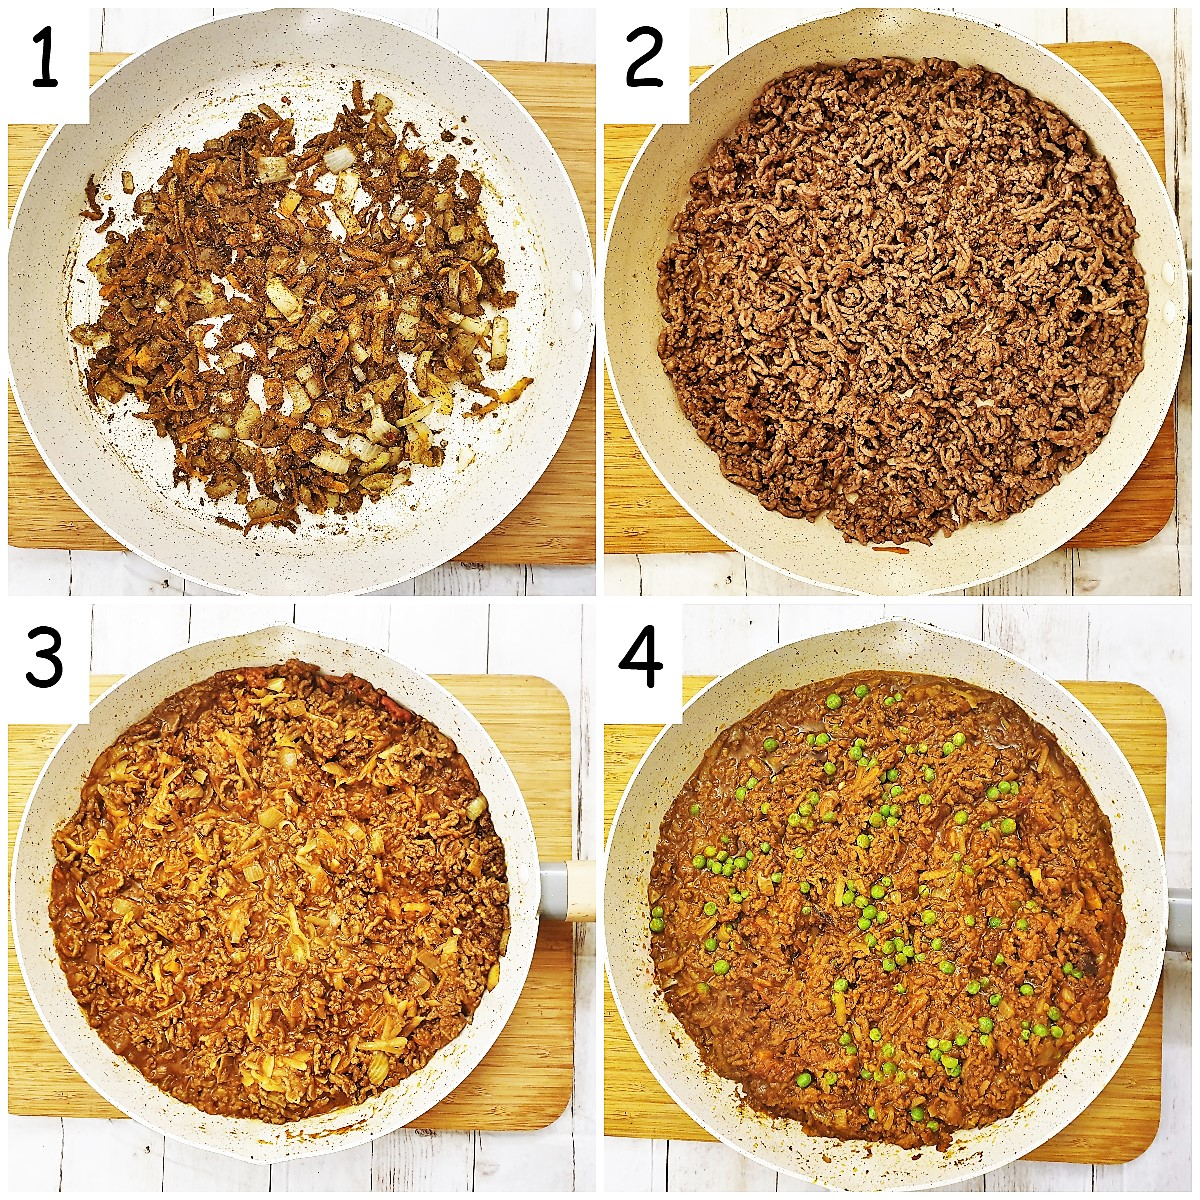 Steps for making the curry